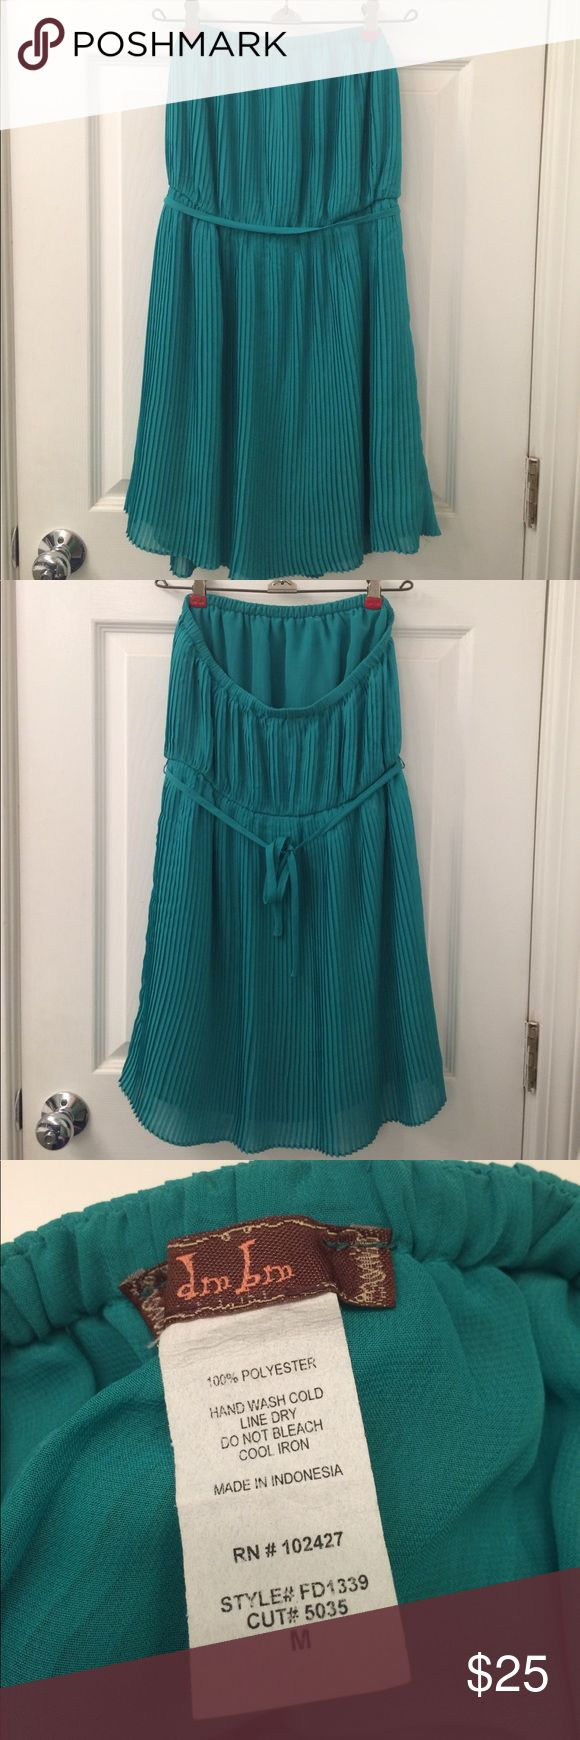 Strapless green chiffon dress Elastic top strapless green chiffon dress with belt. Hits just above knees. Fits more like a S/M. dm bm Dresses Mini